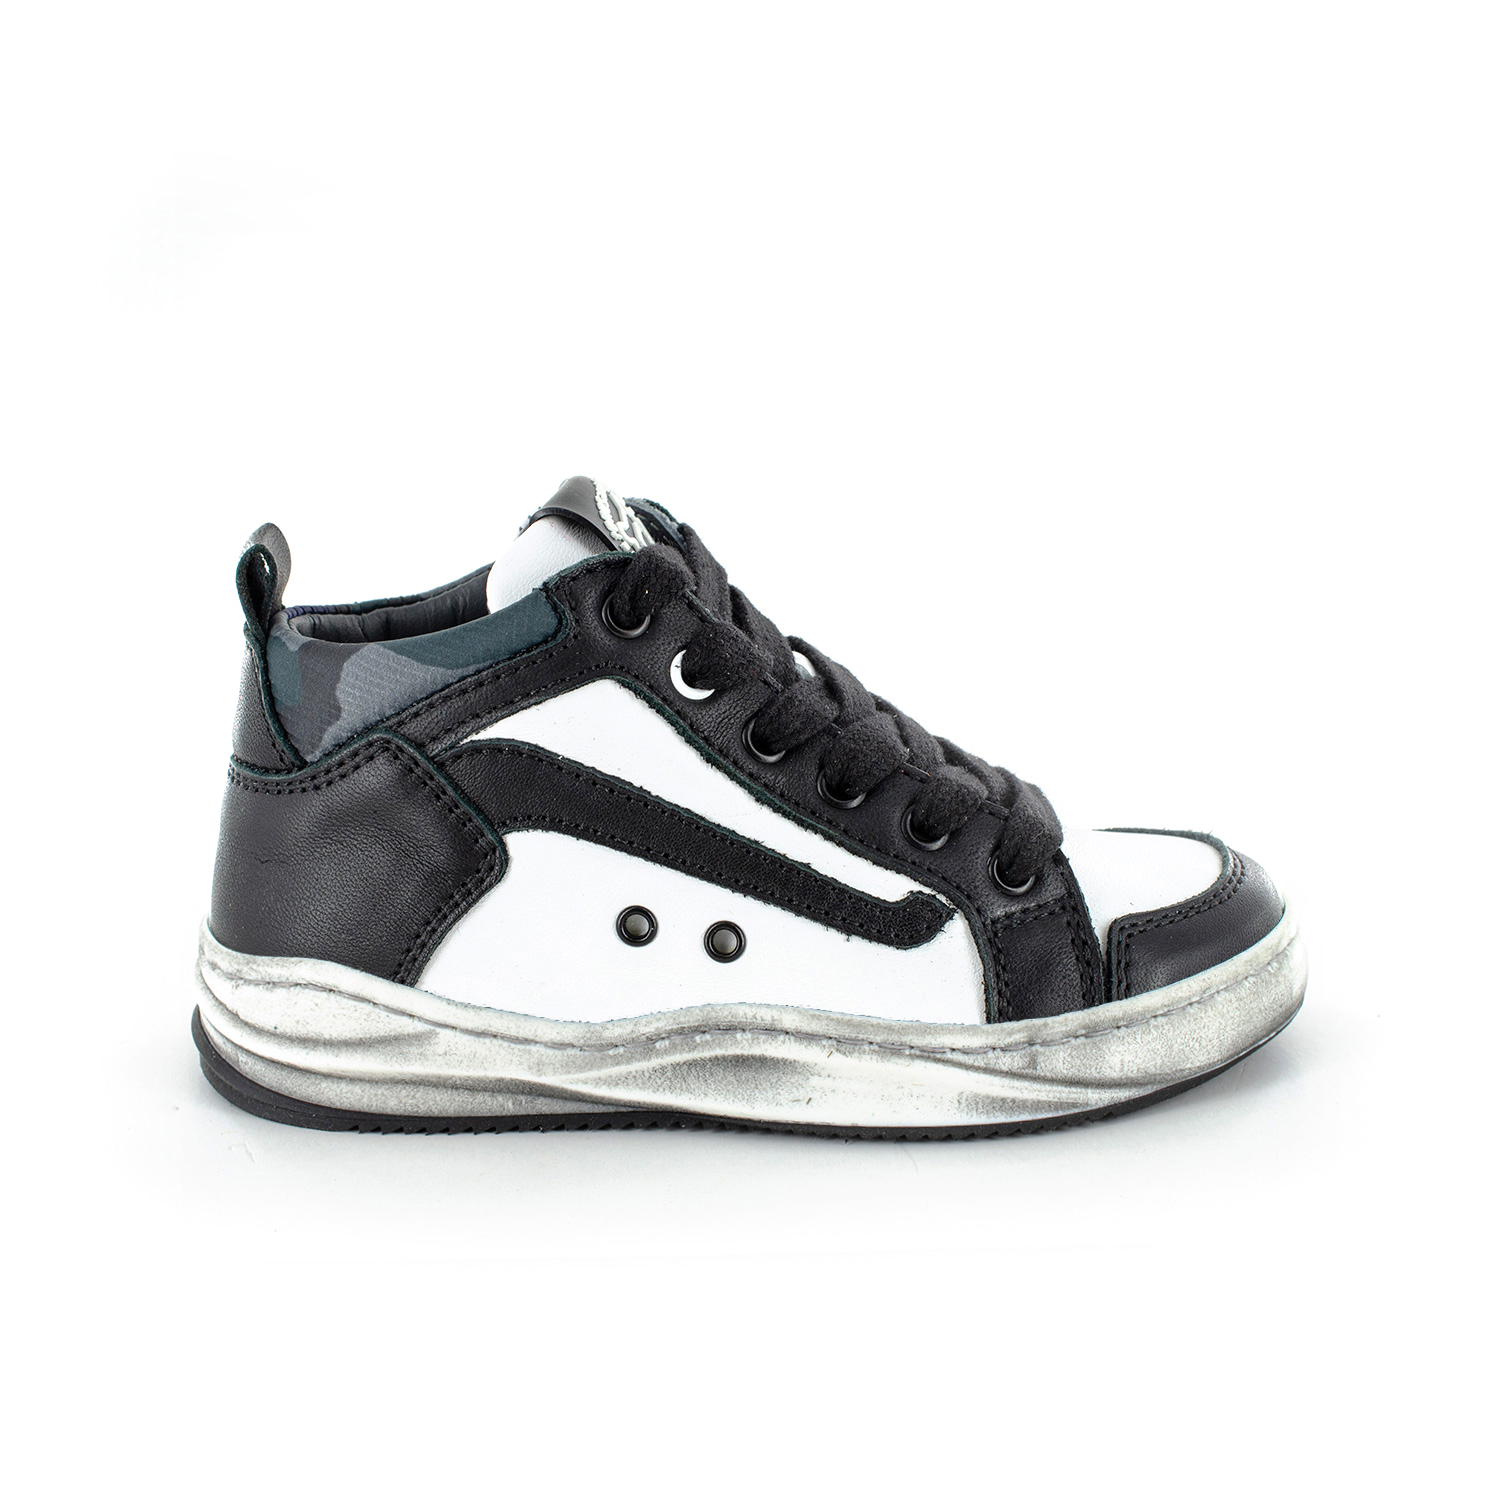 BAKAR calf black + white